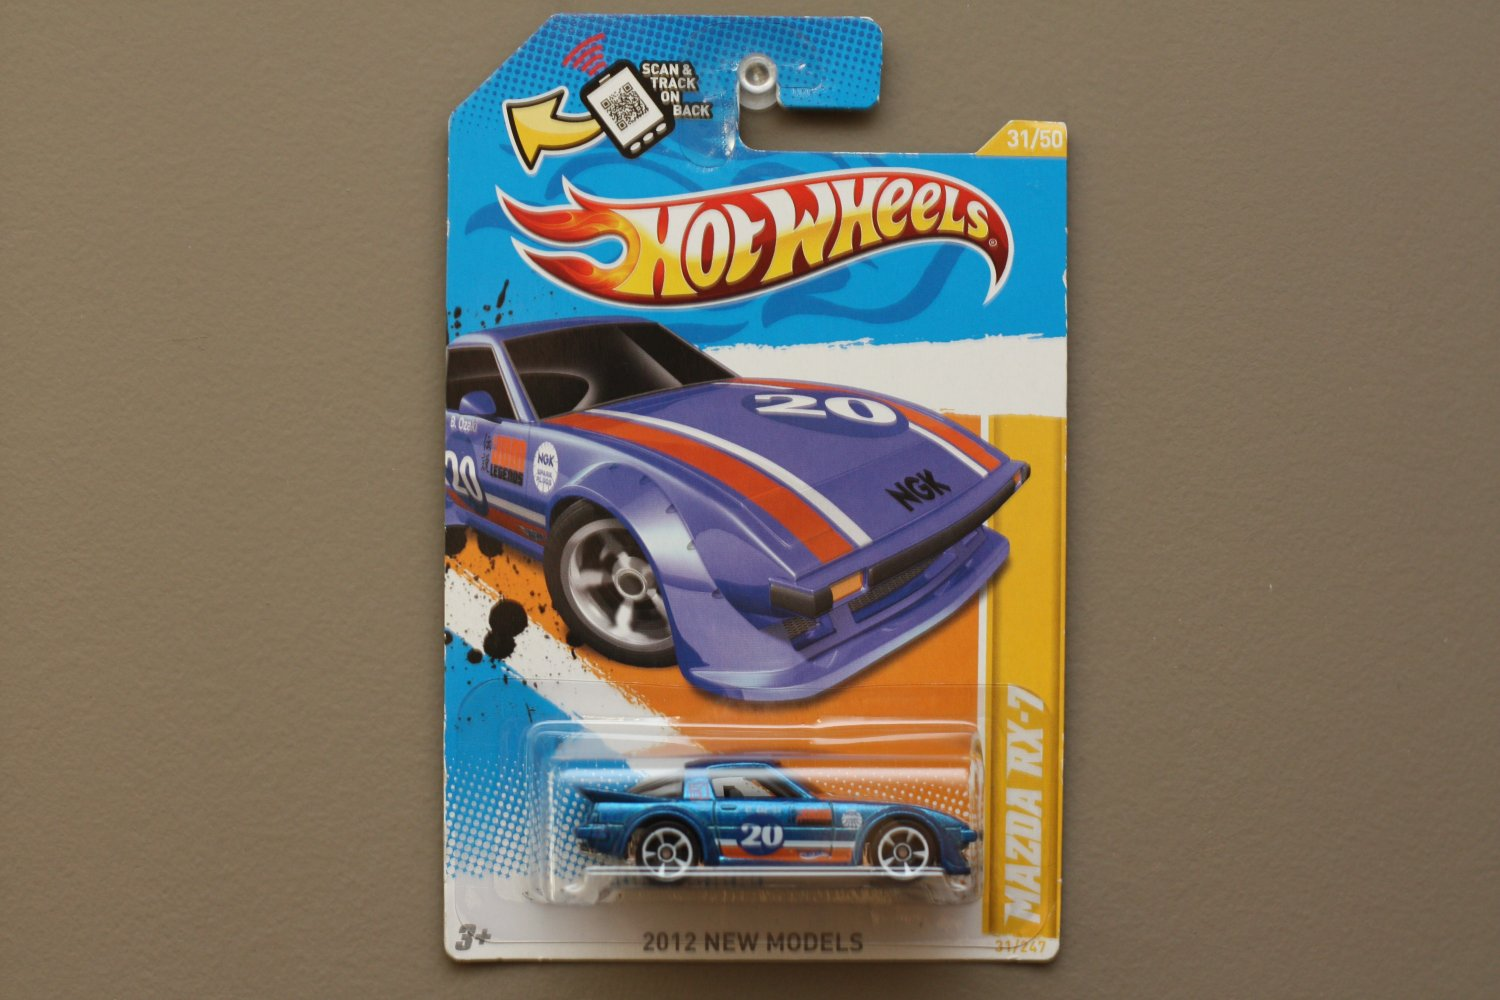 Hot Wheels 2012 New Models Mazda RX-7 (blue) (SEE CONDITION)